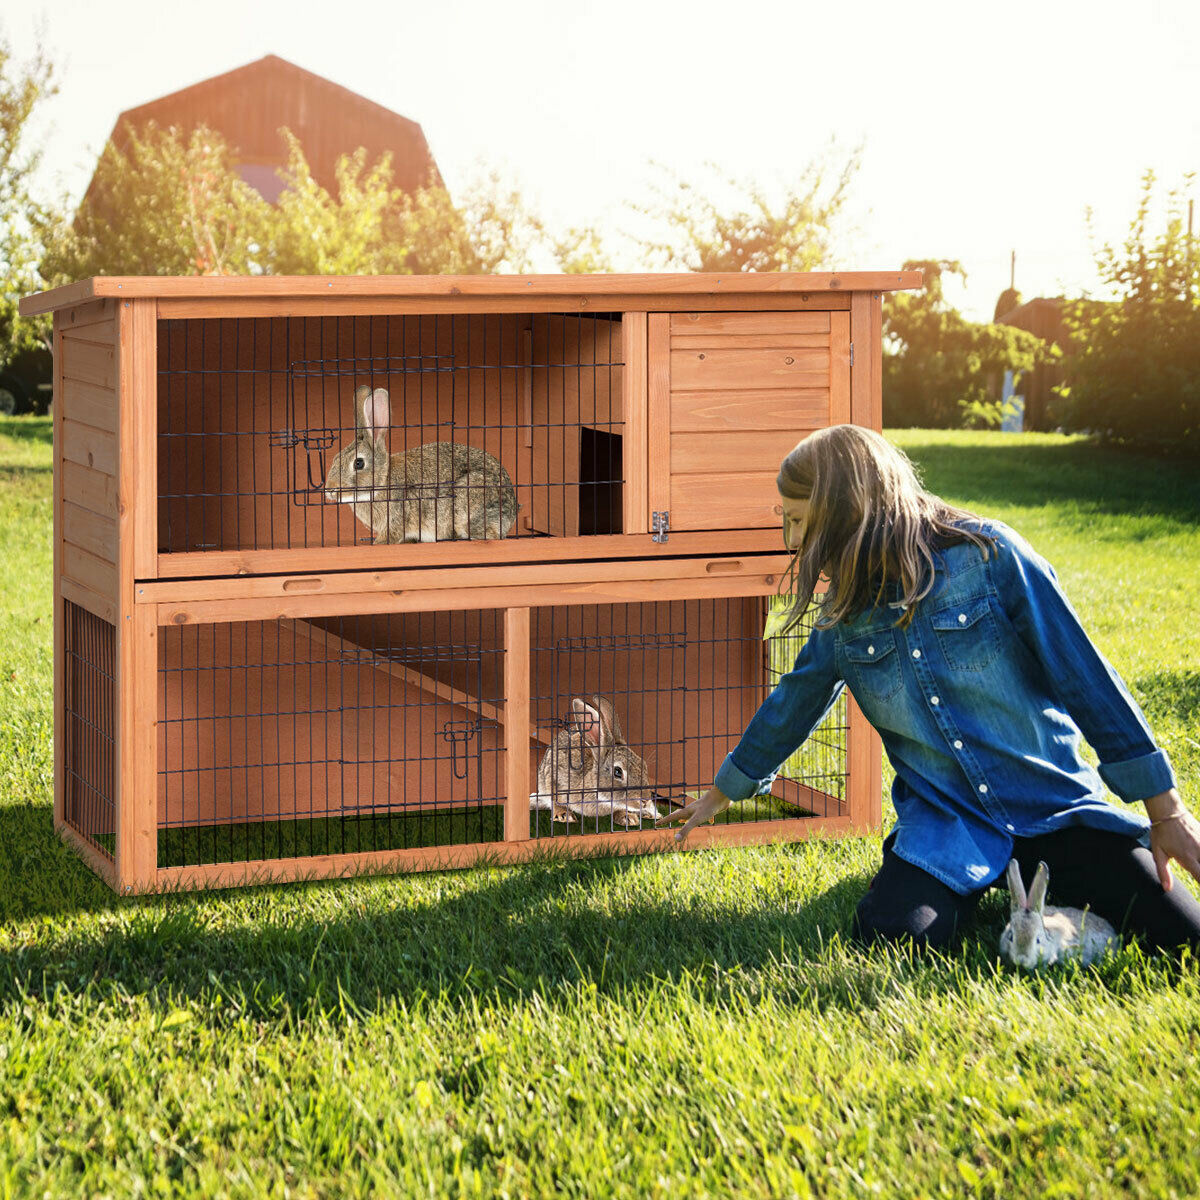 Gymax Large Chicken Coop Rabbit Hutch Garden Backyard Wood Hen House Poultry Cage - image 10 of 10